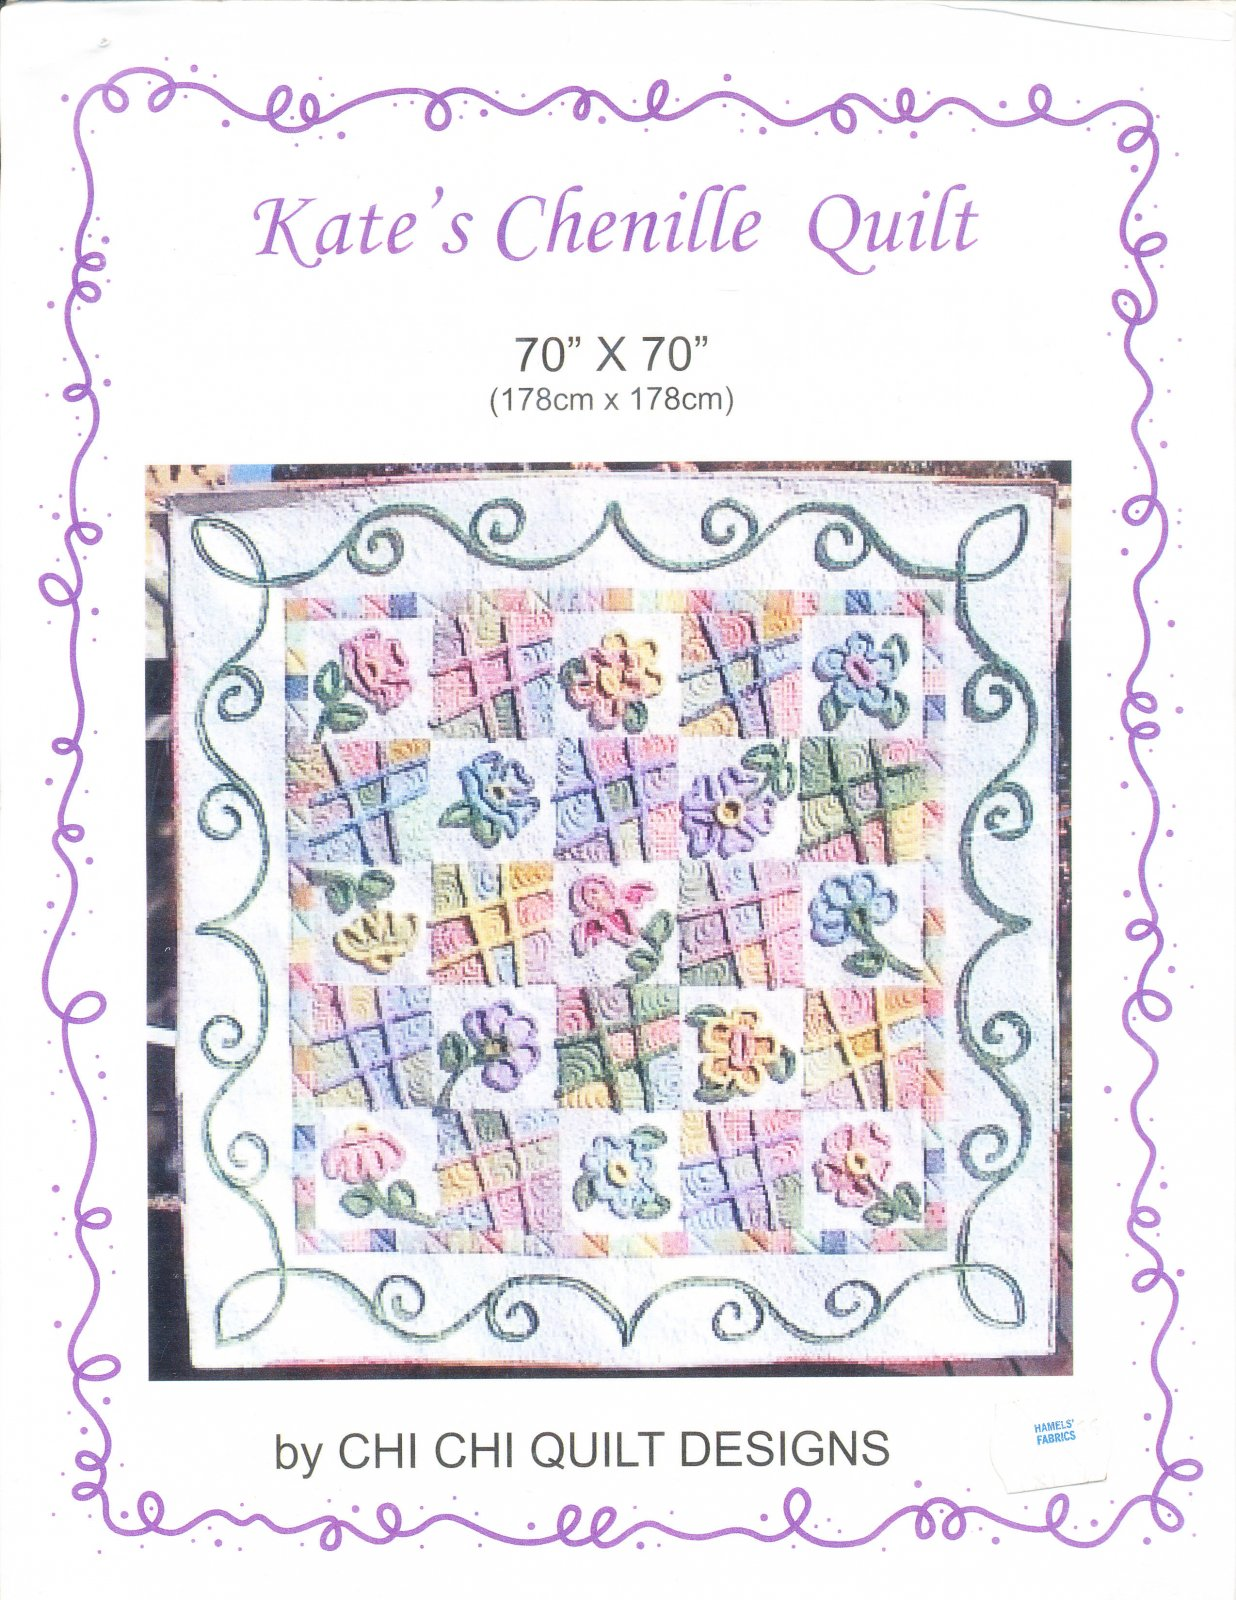 Kate's Chenille Quilt